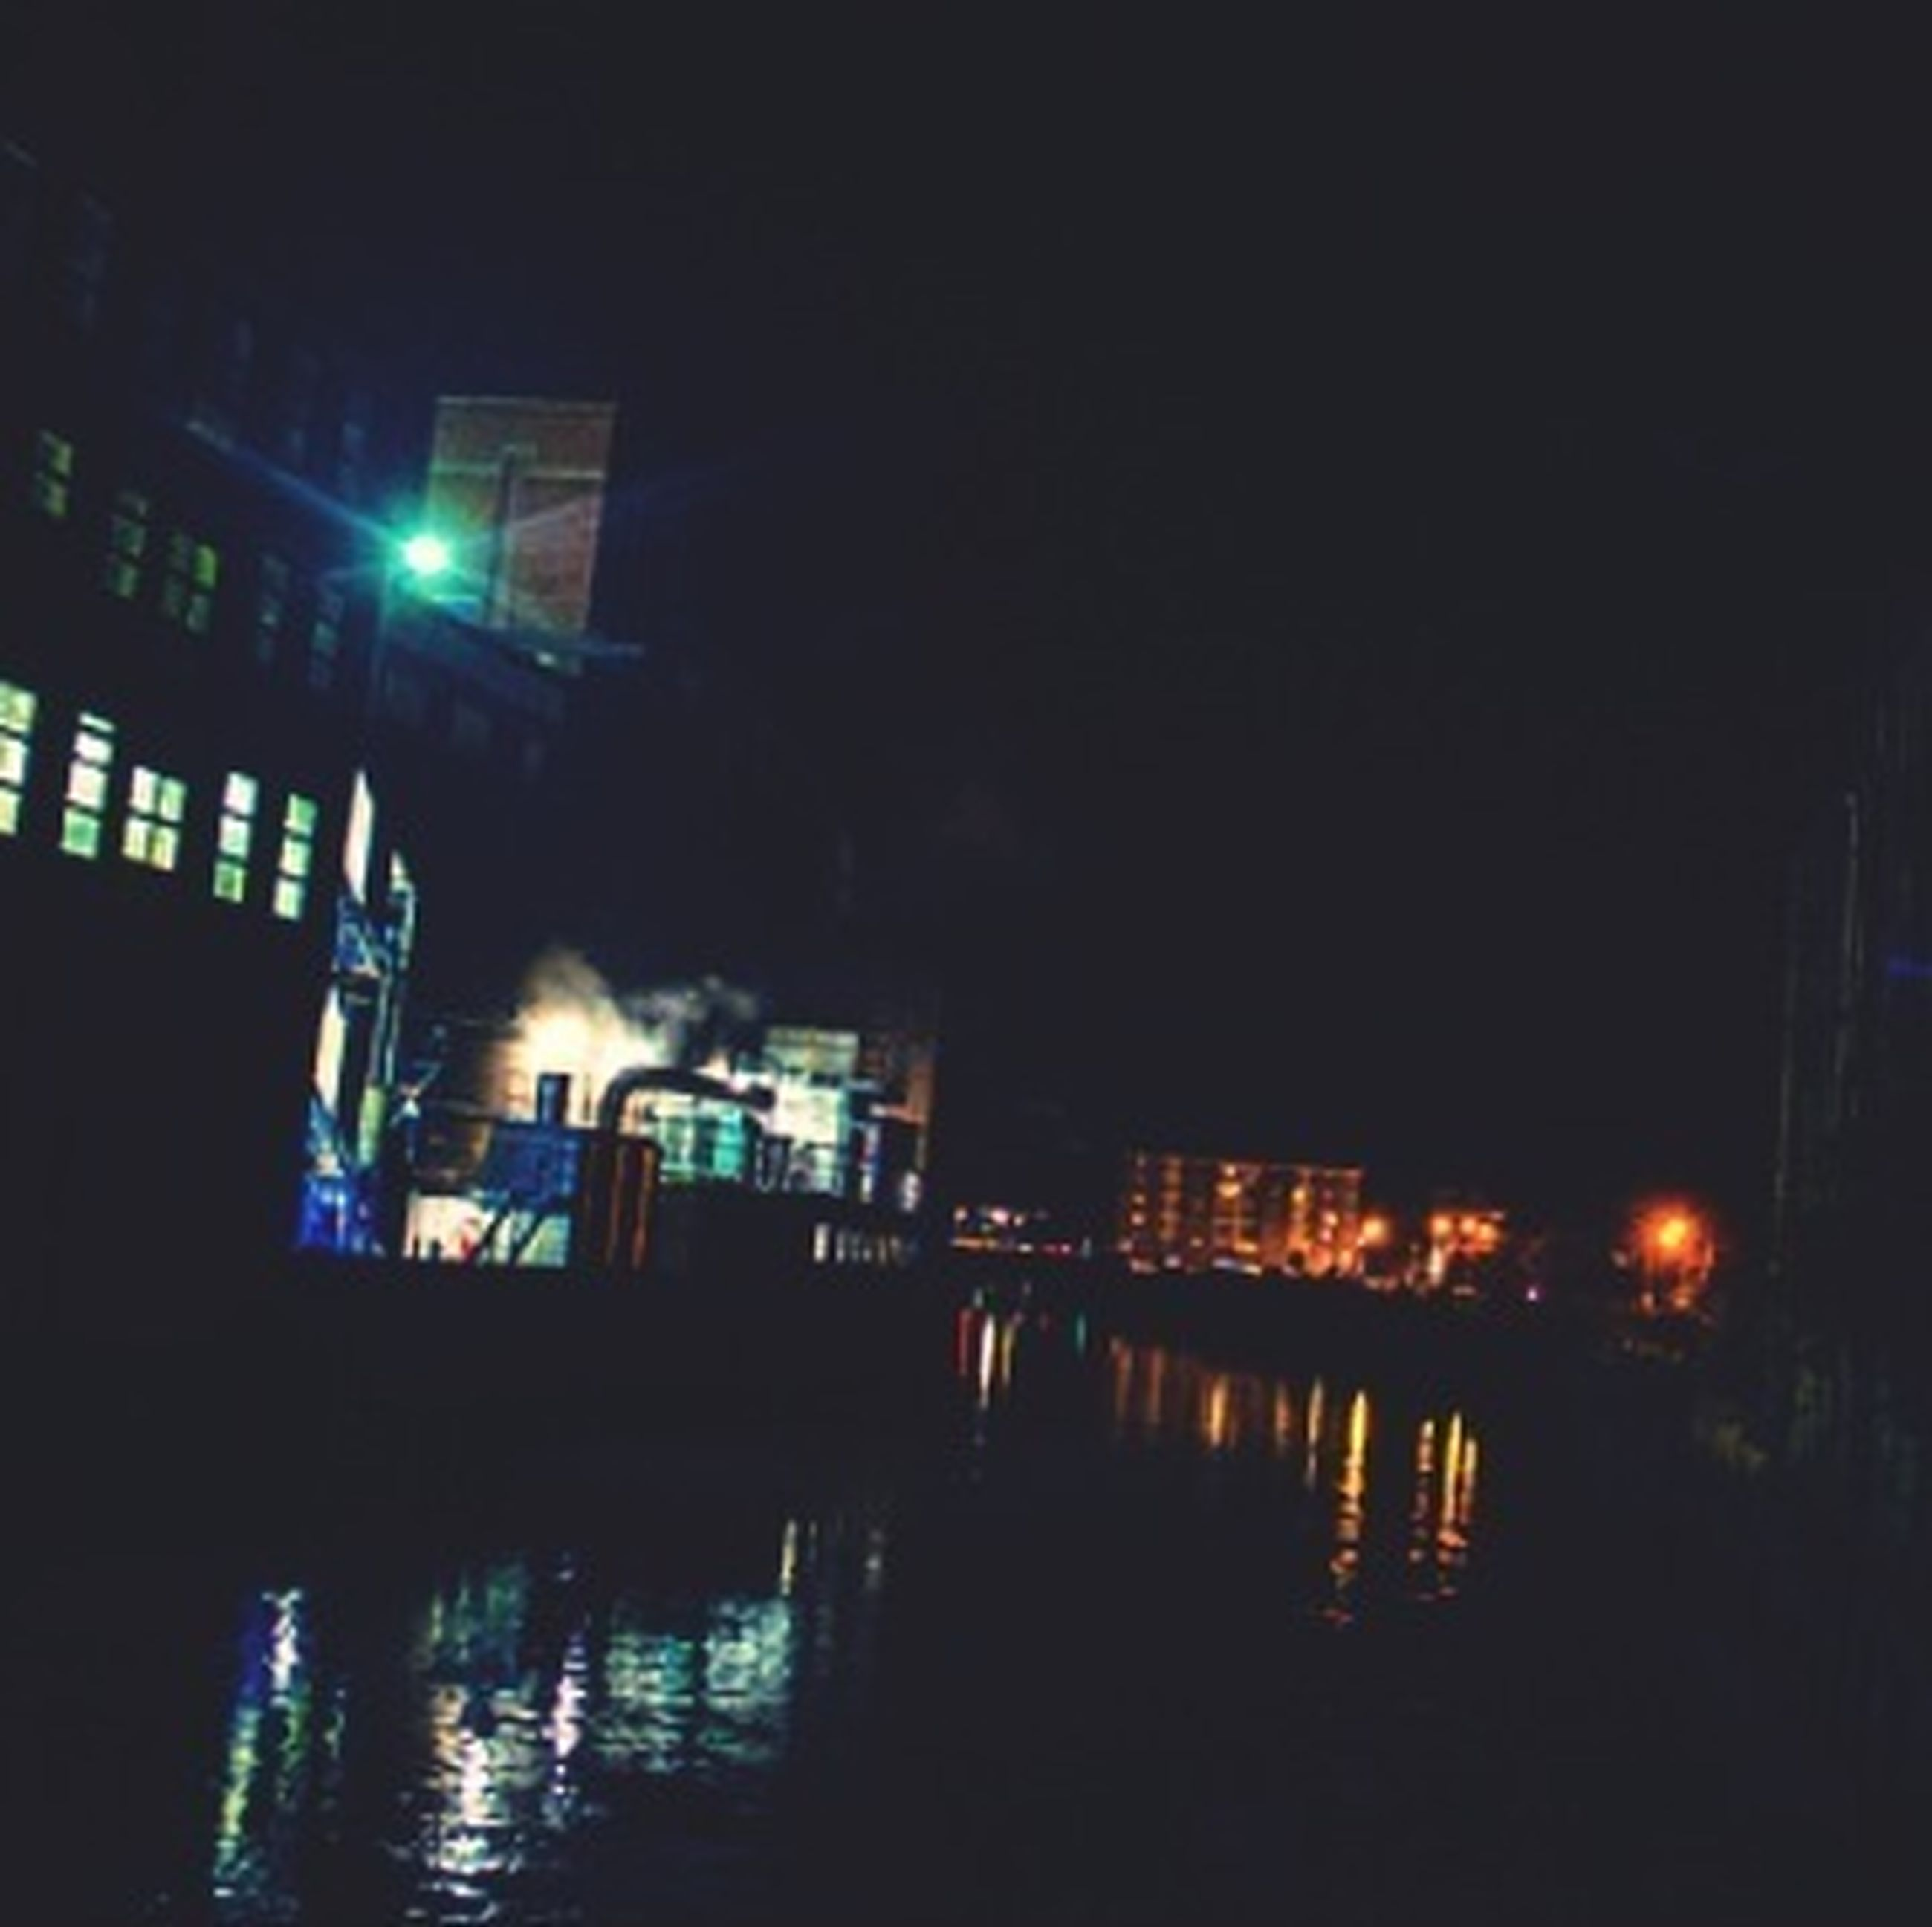 illuminated, night, building exterior, water, reflection, architecture, built structure, waterfront, city, river, sky, street light, building, lighting equipment, canal, residential building, residential structure, outdoors, dark, no people